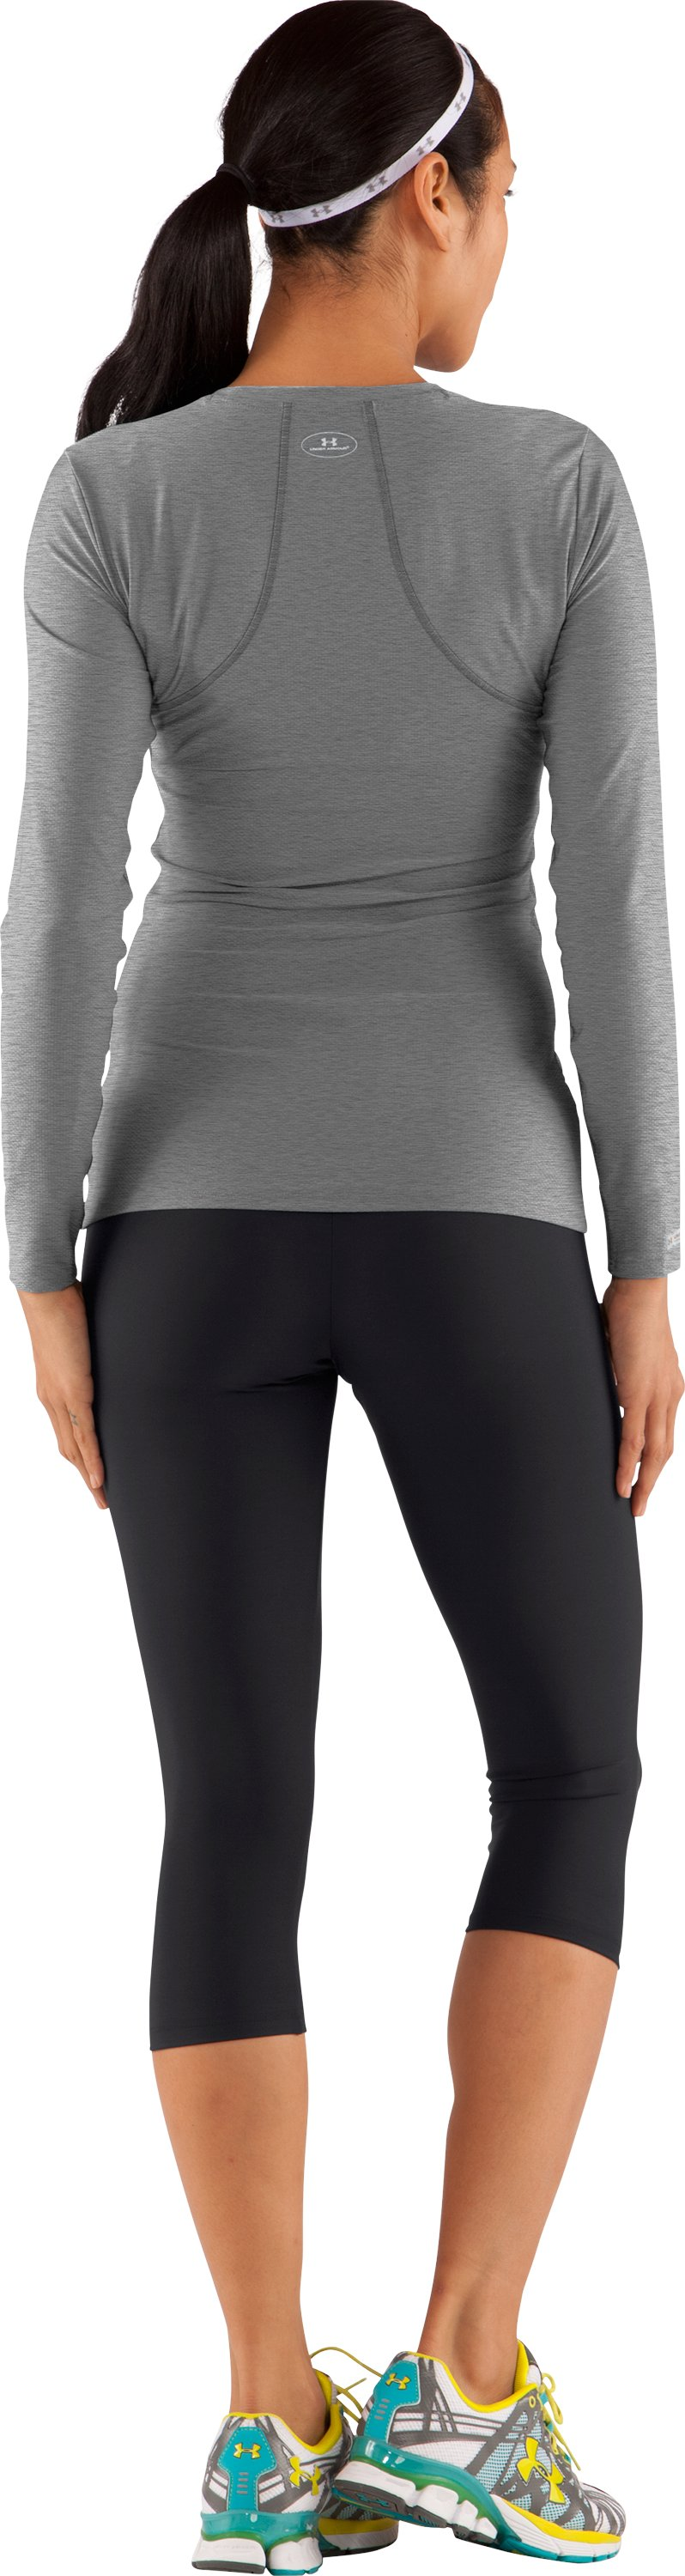 Women's UA HeatGear® Fitted Long Sleeve Shirt, True Gray Heather, Back